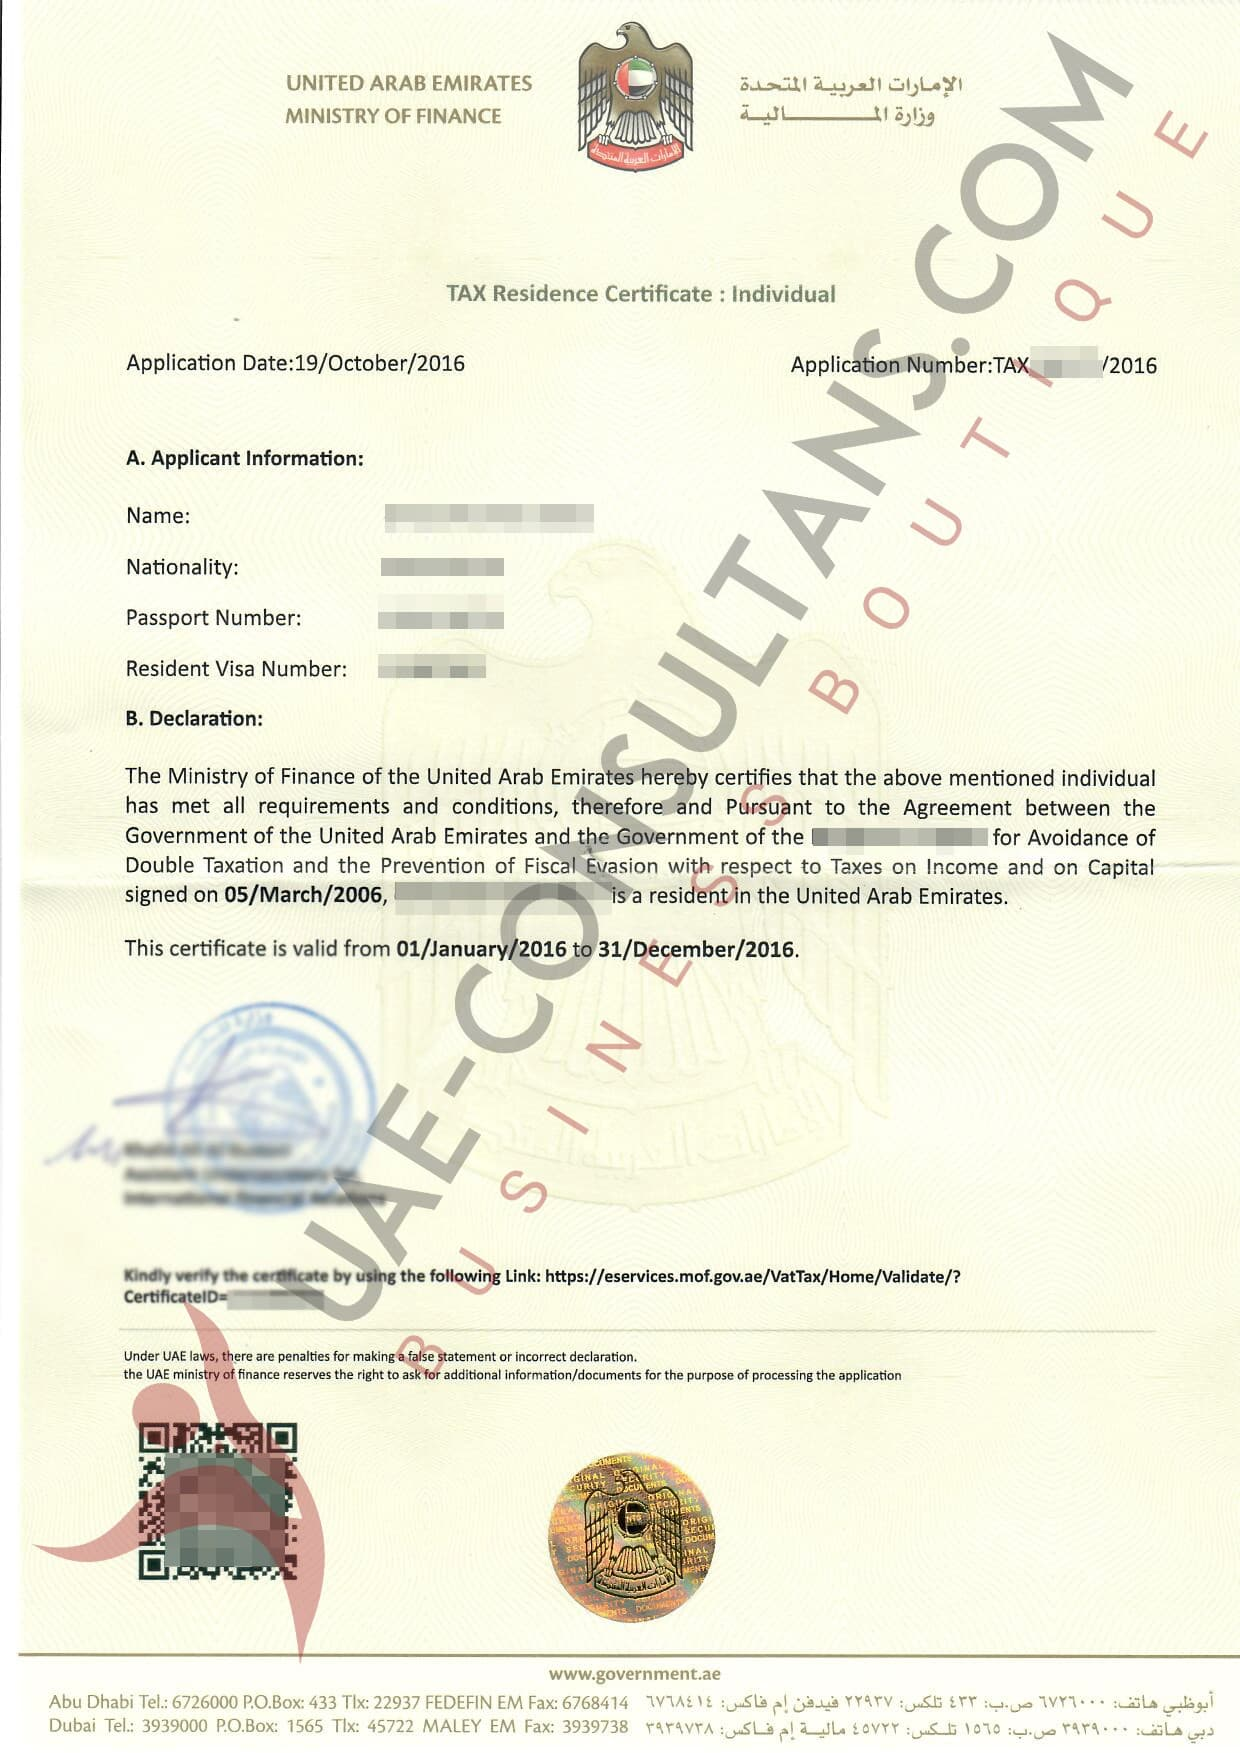 Old Tax Residency Certificate UAE